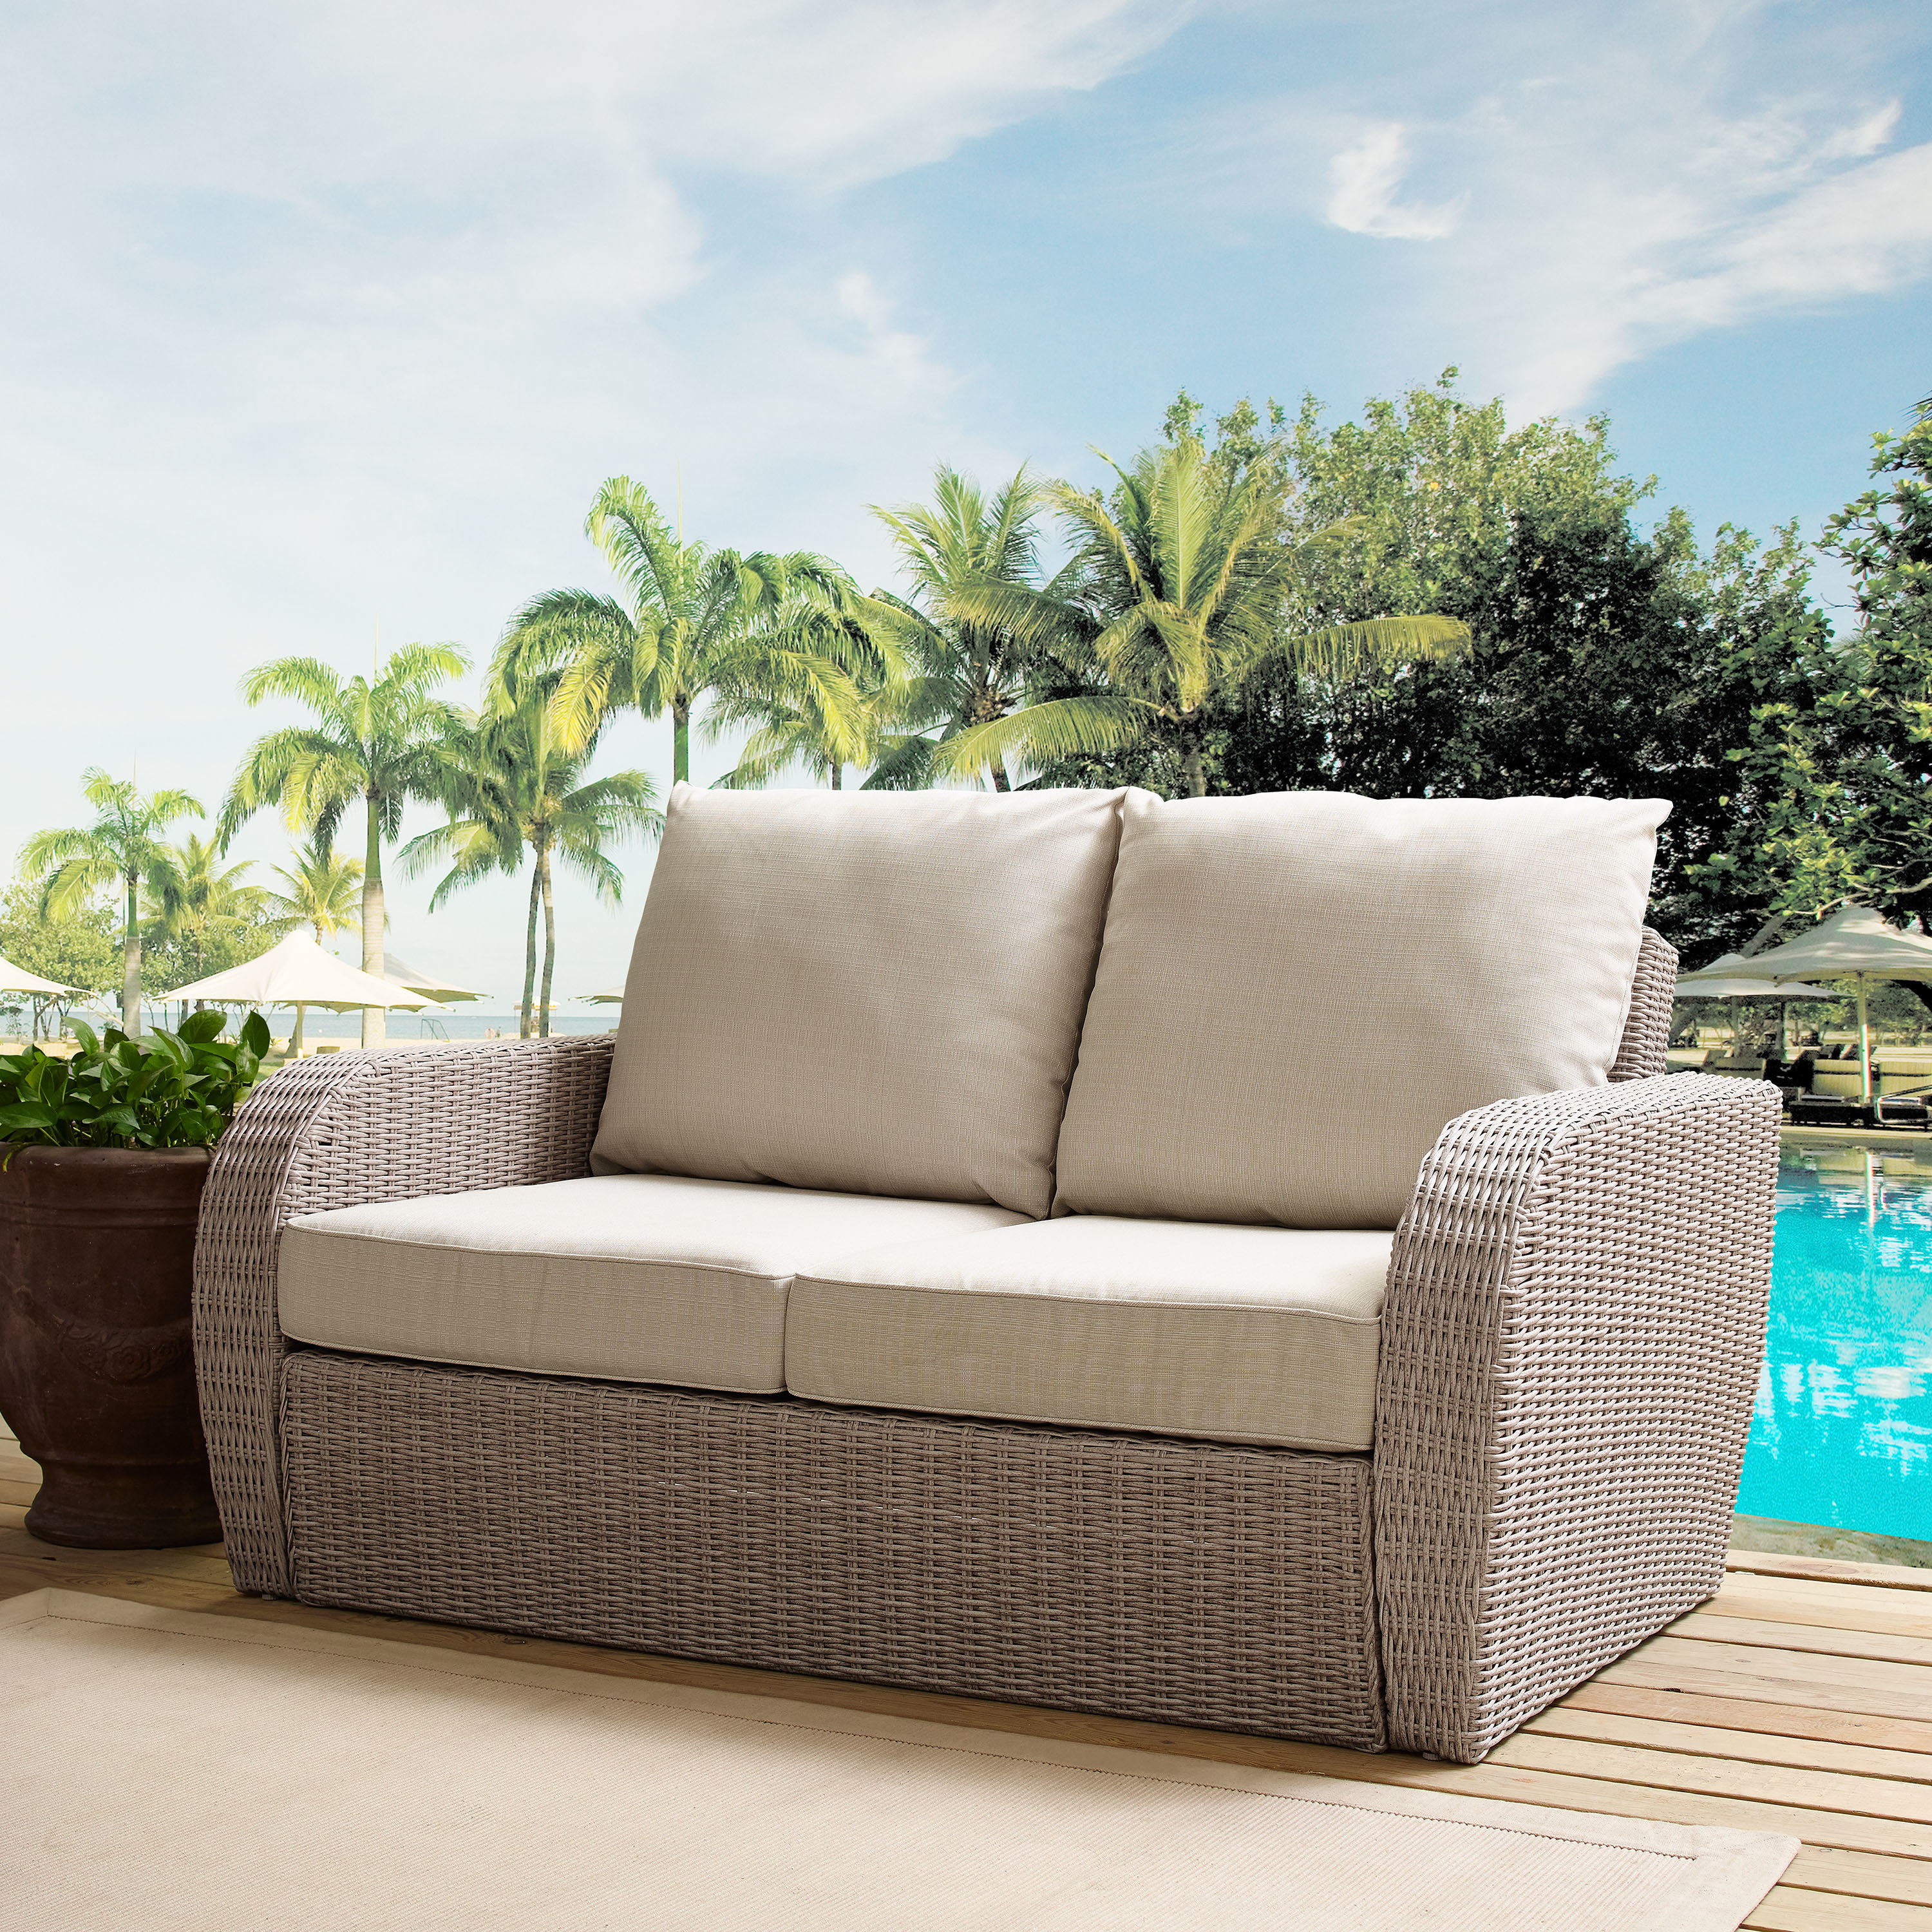 Most Popular Zakrzewski Wicker Loveseat With Cushion Intended For Vardin Loveseats With Cushions (View 14 of 20)